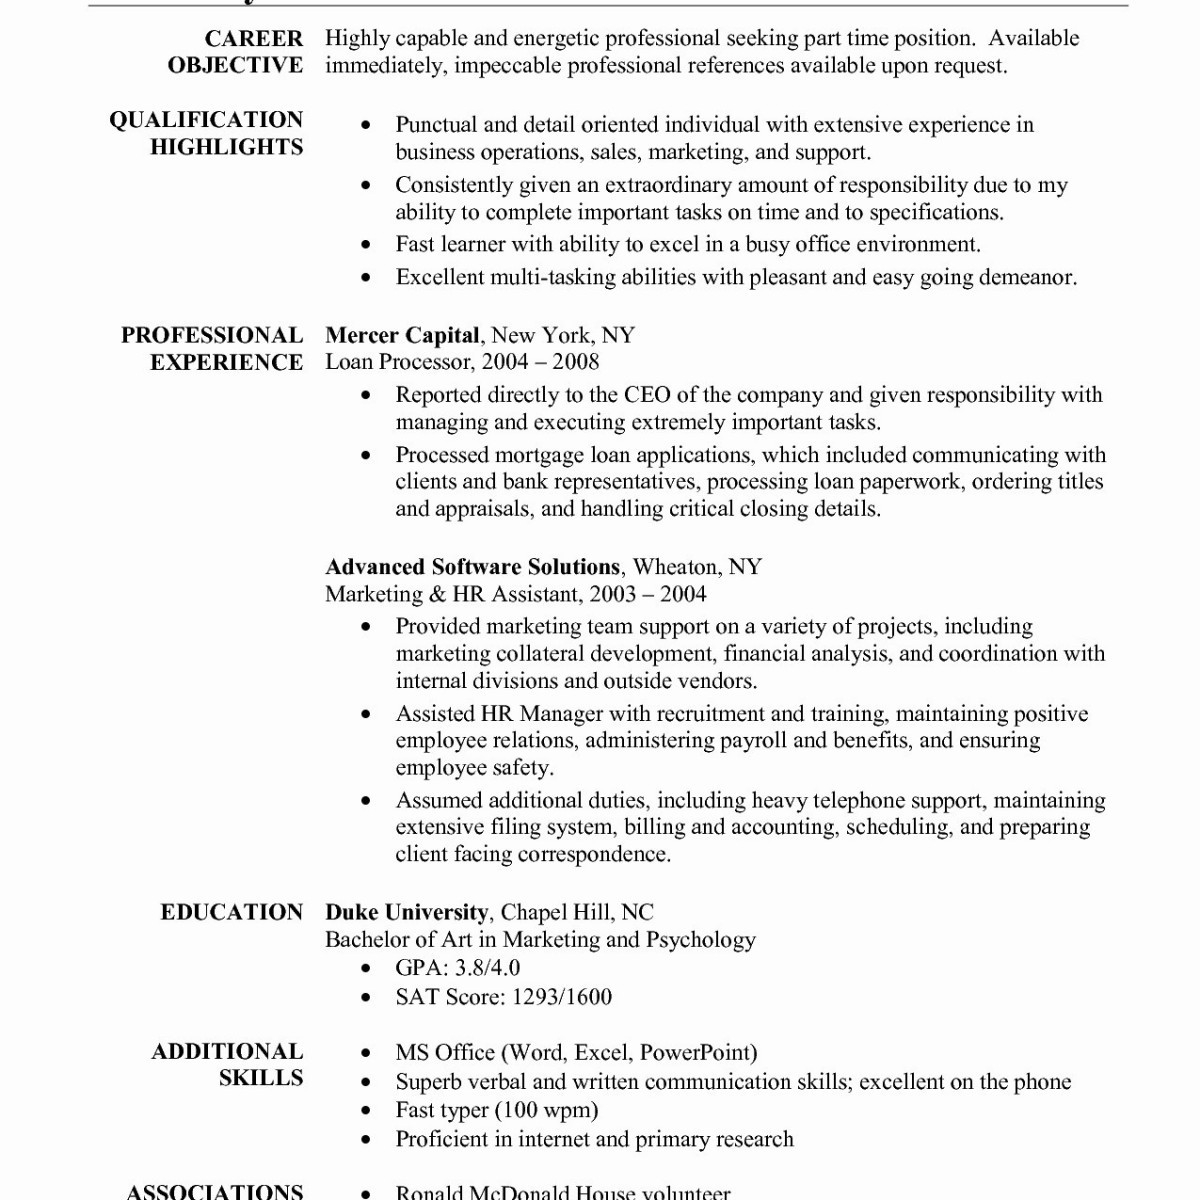 Quick Learner Resume Example - 40 Dazzling Fast Learner Resume Pics I0y